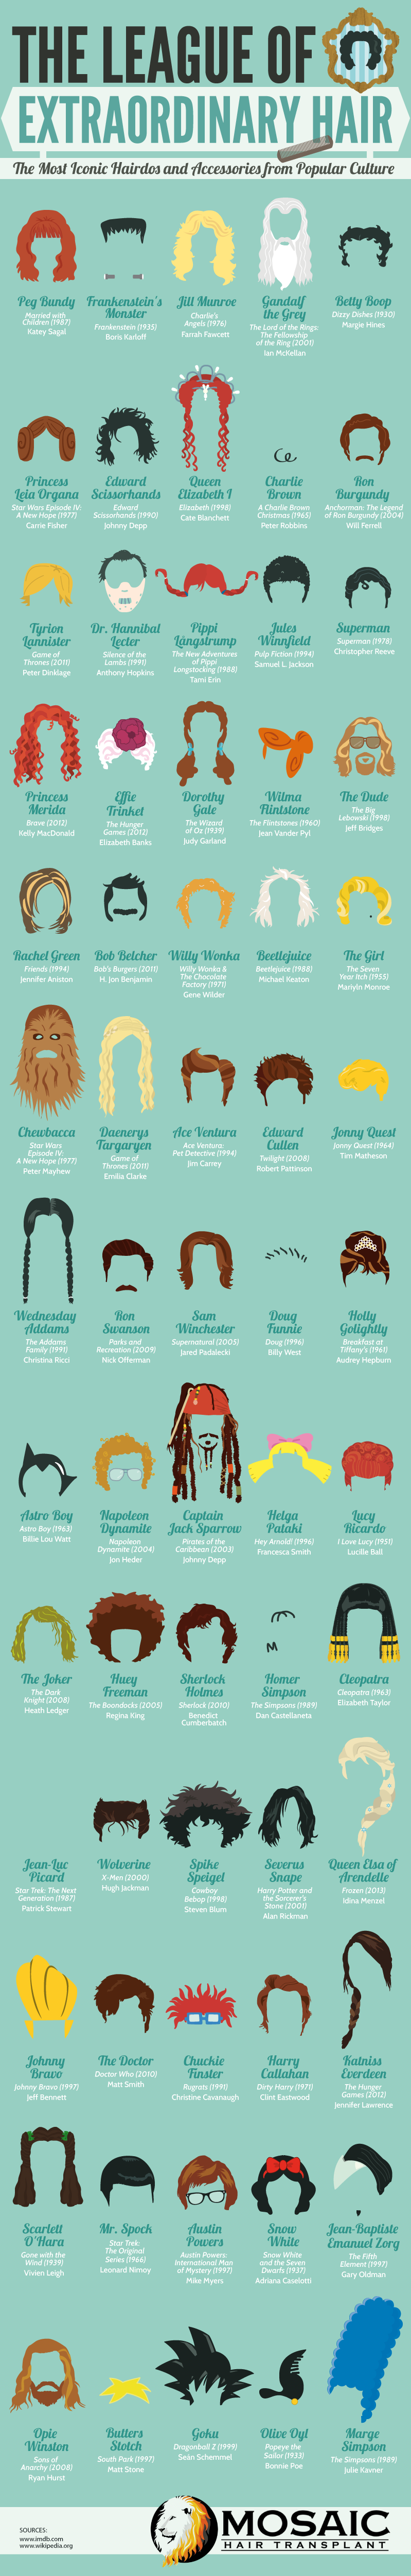 This Chart Of Iconic Hairstyles Is Strangely Fascinating Funny Photos Of People League Of Extraordinary Iconic Movies